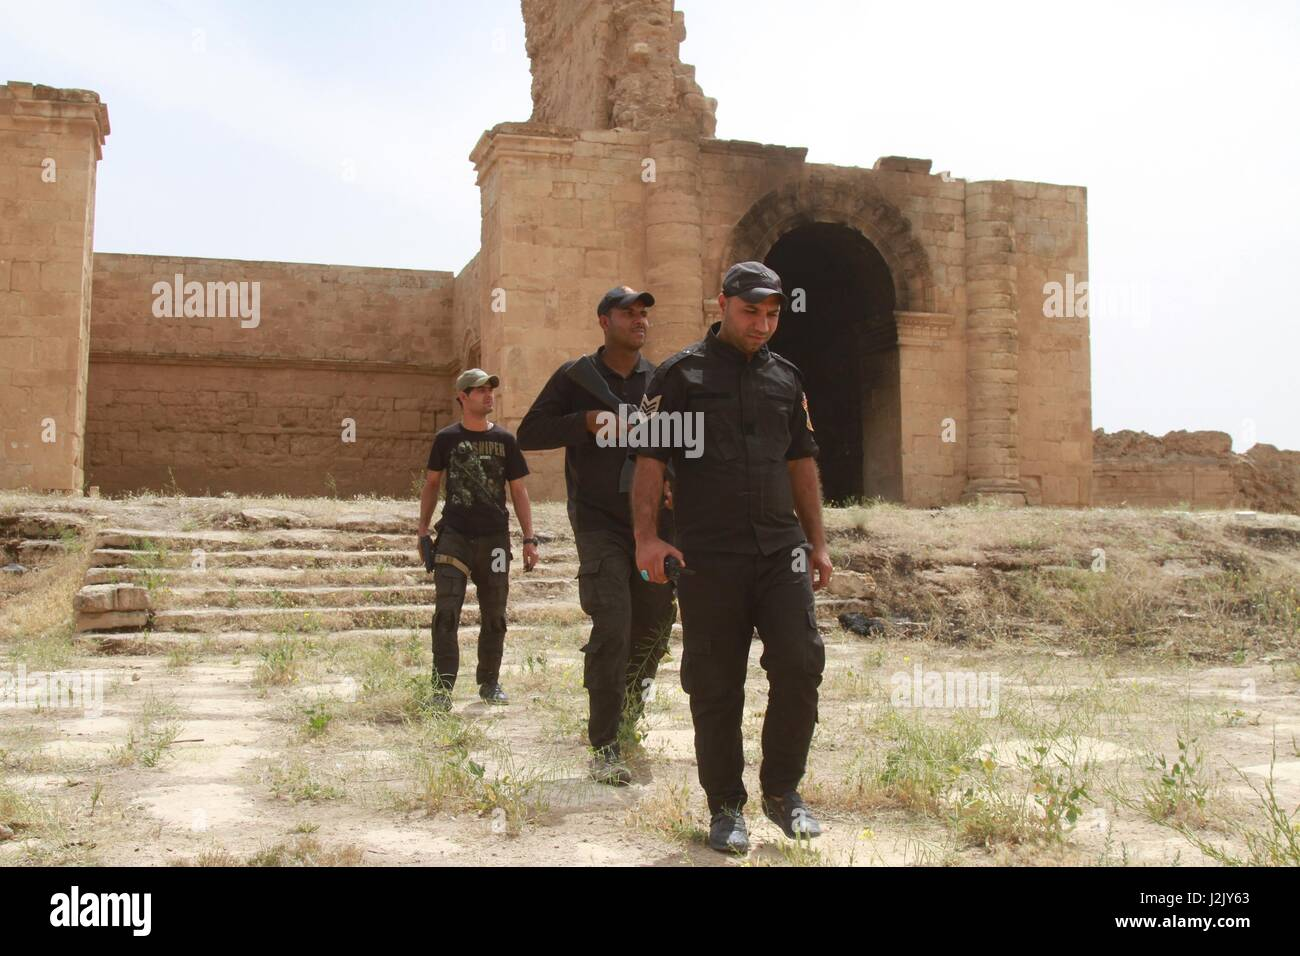 Baghdad, Iraq. 28th Apr, 2017. Iraqi paramilitary soldiers patrol at the ancient Hatra city in the south of Nineveh - Stock Image